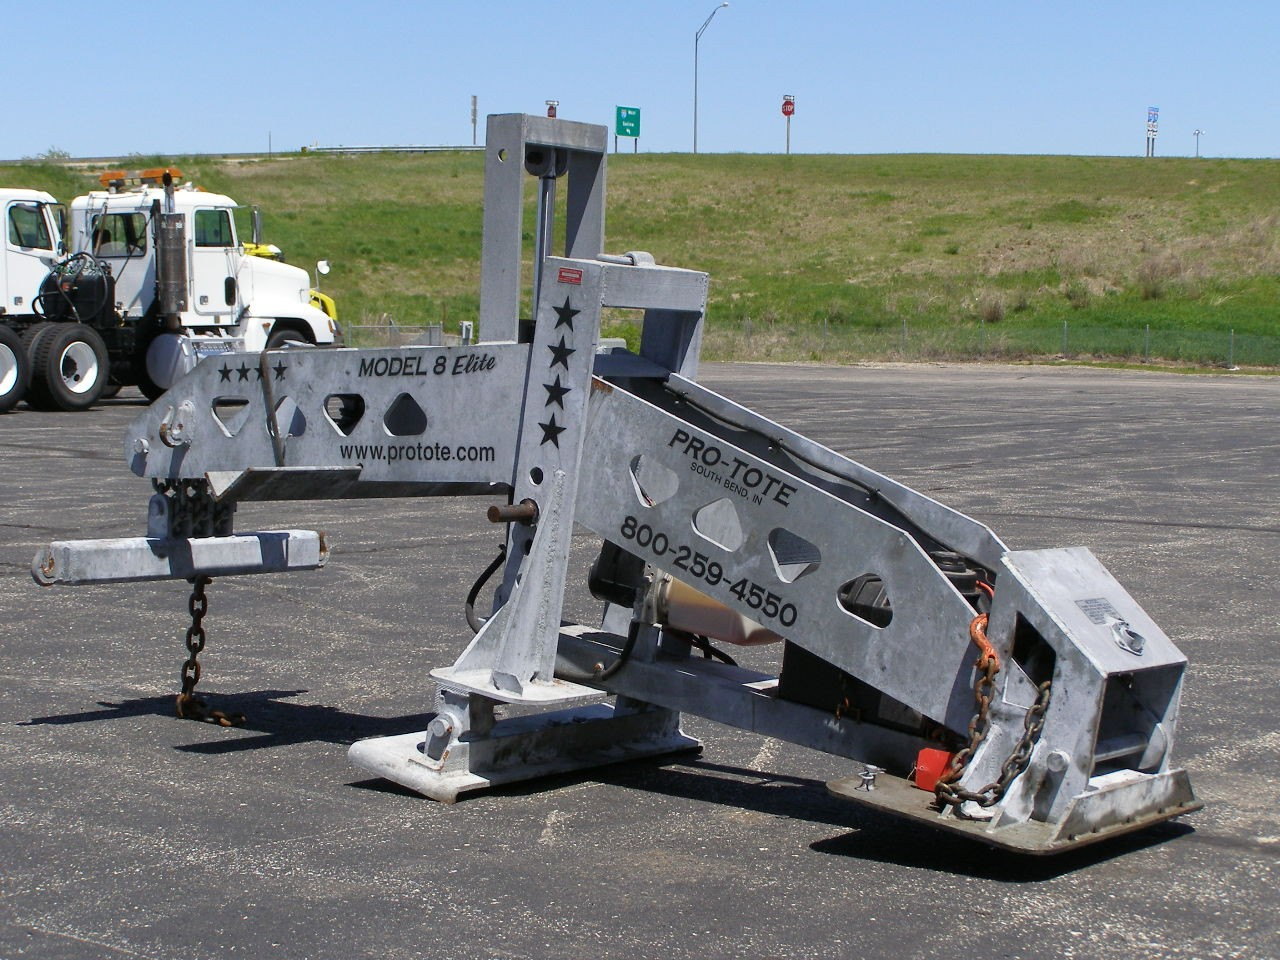 Used 2007 Pro-Tote Semi Truck Towing MODEL 8 ELITE in Solomon, KS